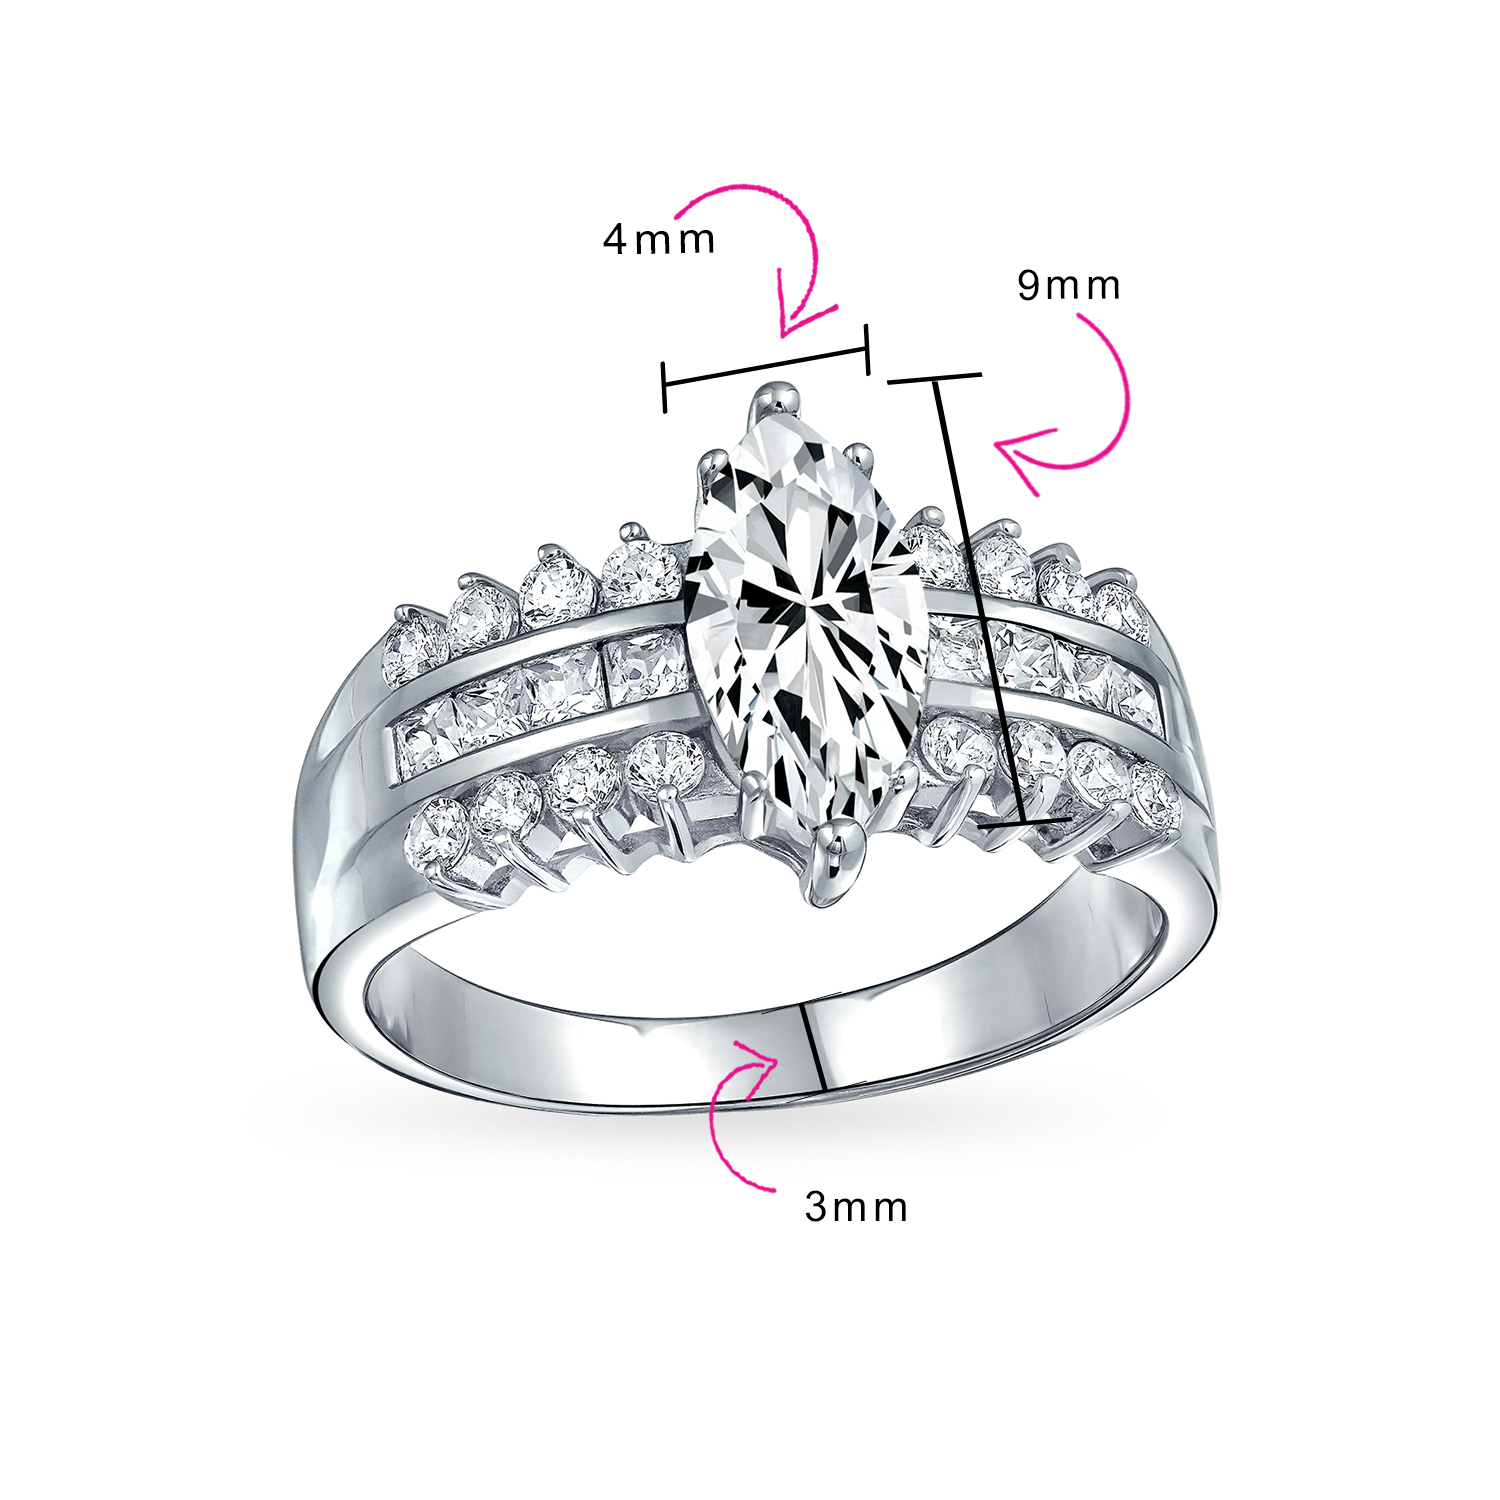 3.20 Carat Radiant Brilliant Cut Solitaire Antique Art Deco Engagement Ring In 925 Sterling Silver For Womens Halo Wedding Ring